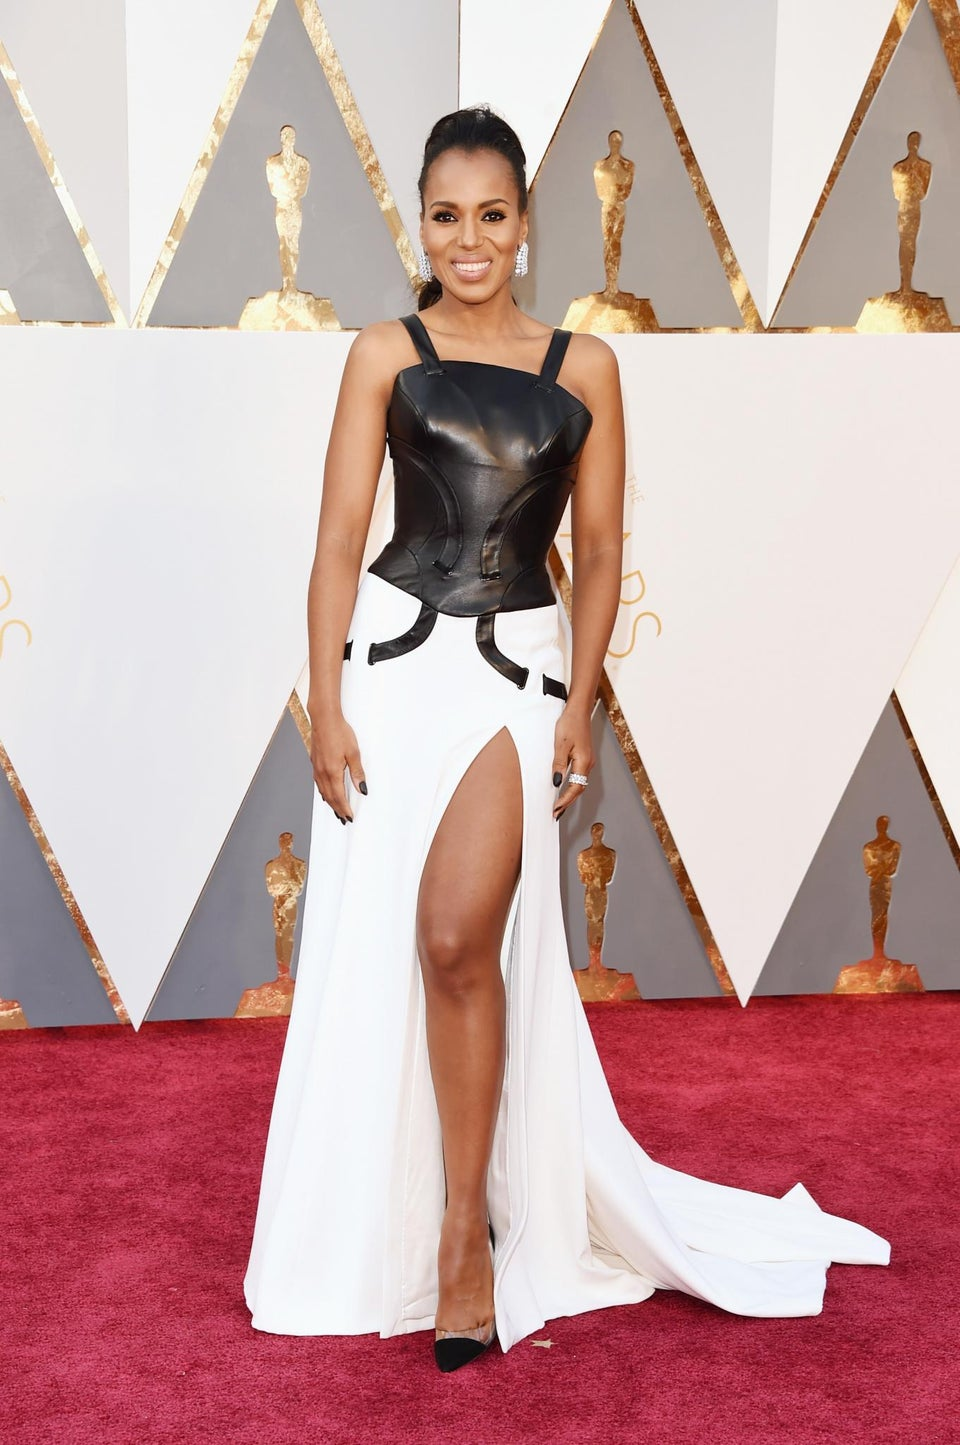 Kerry Washington On Why She Attended The Oscars: 'A Lot Of Voices Are Needed At The Table'